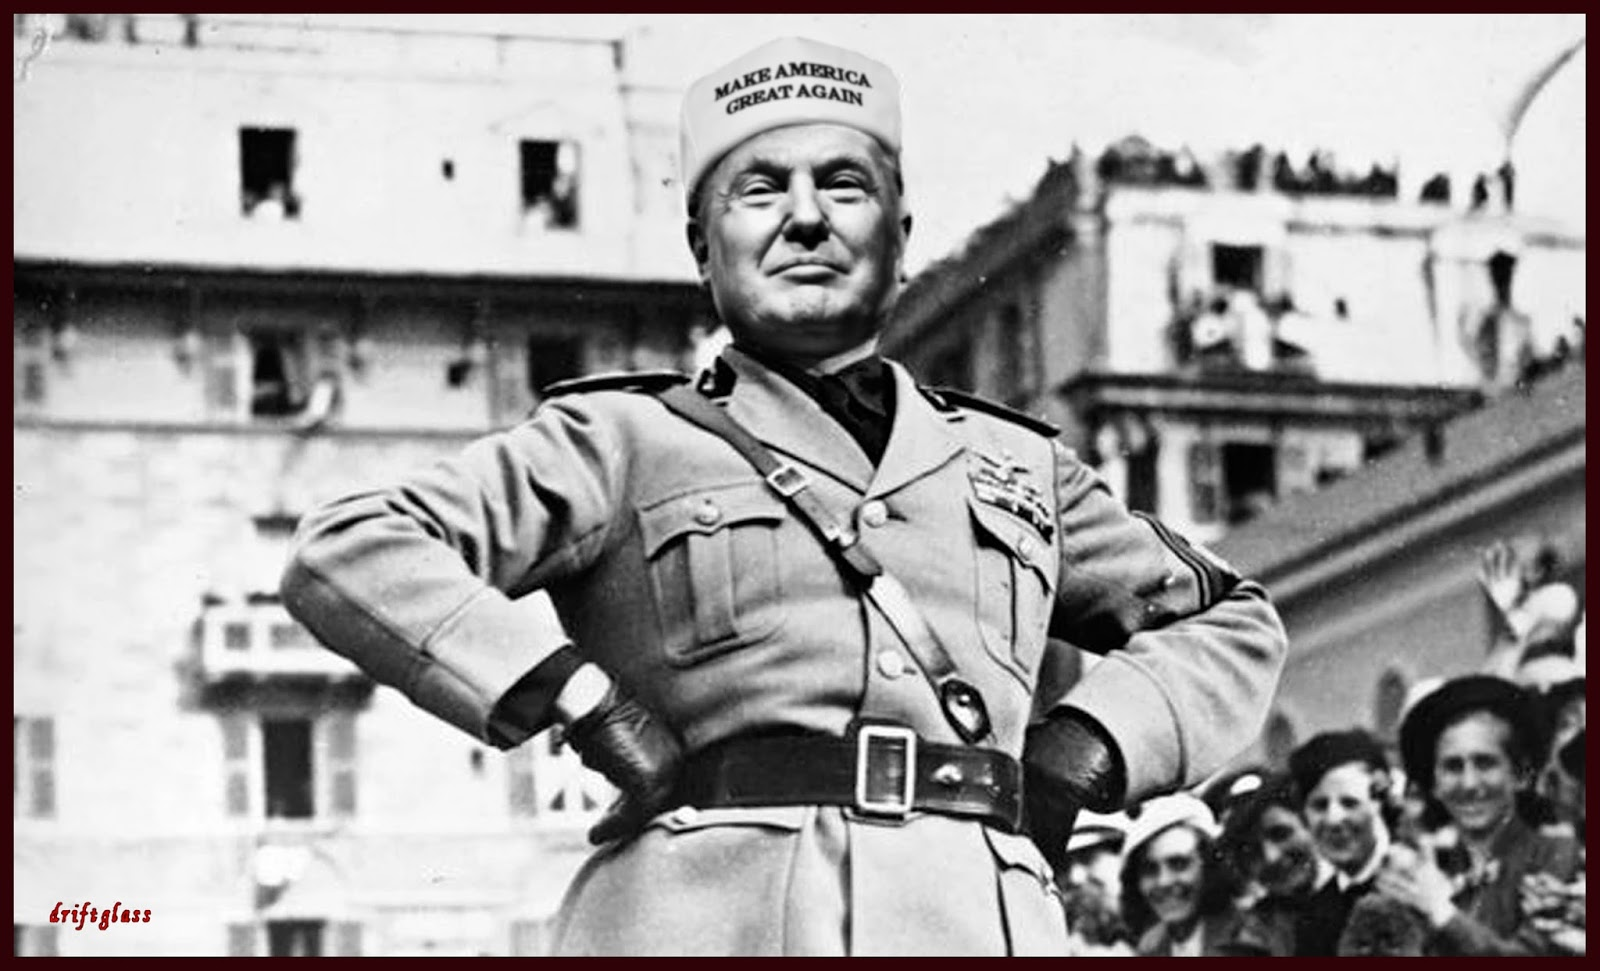 biography of mussolini leader of the italian fascist party and later prime minister italy during wor